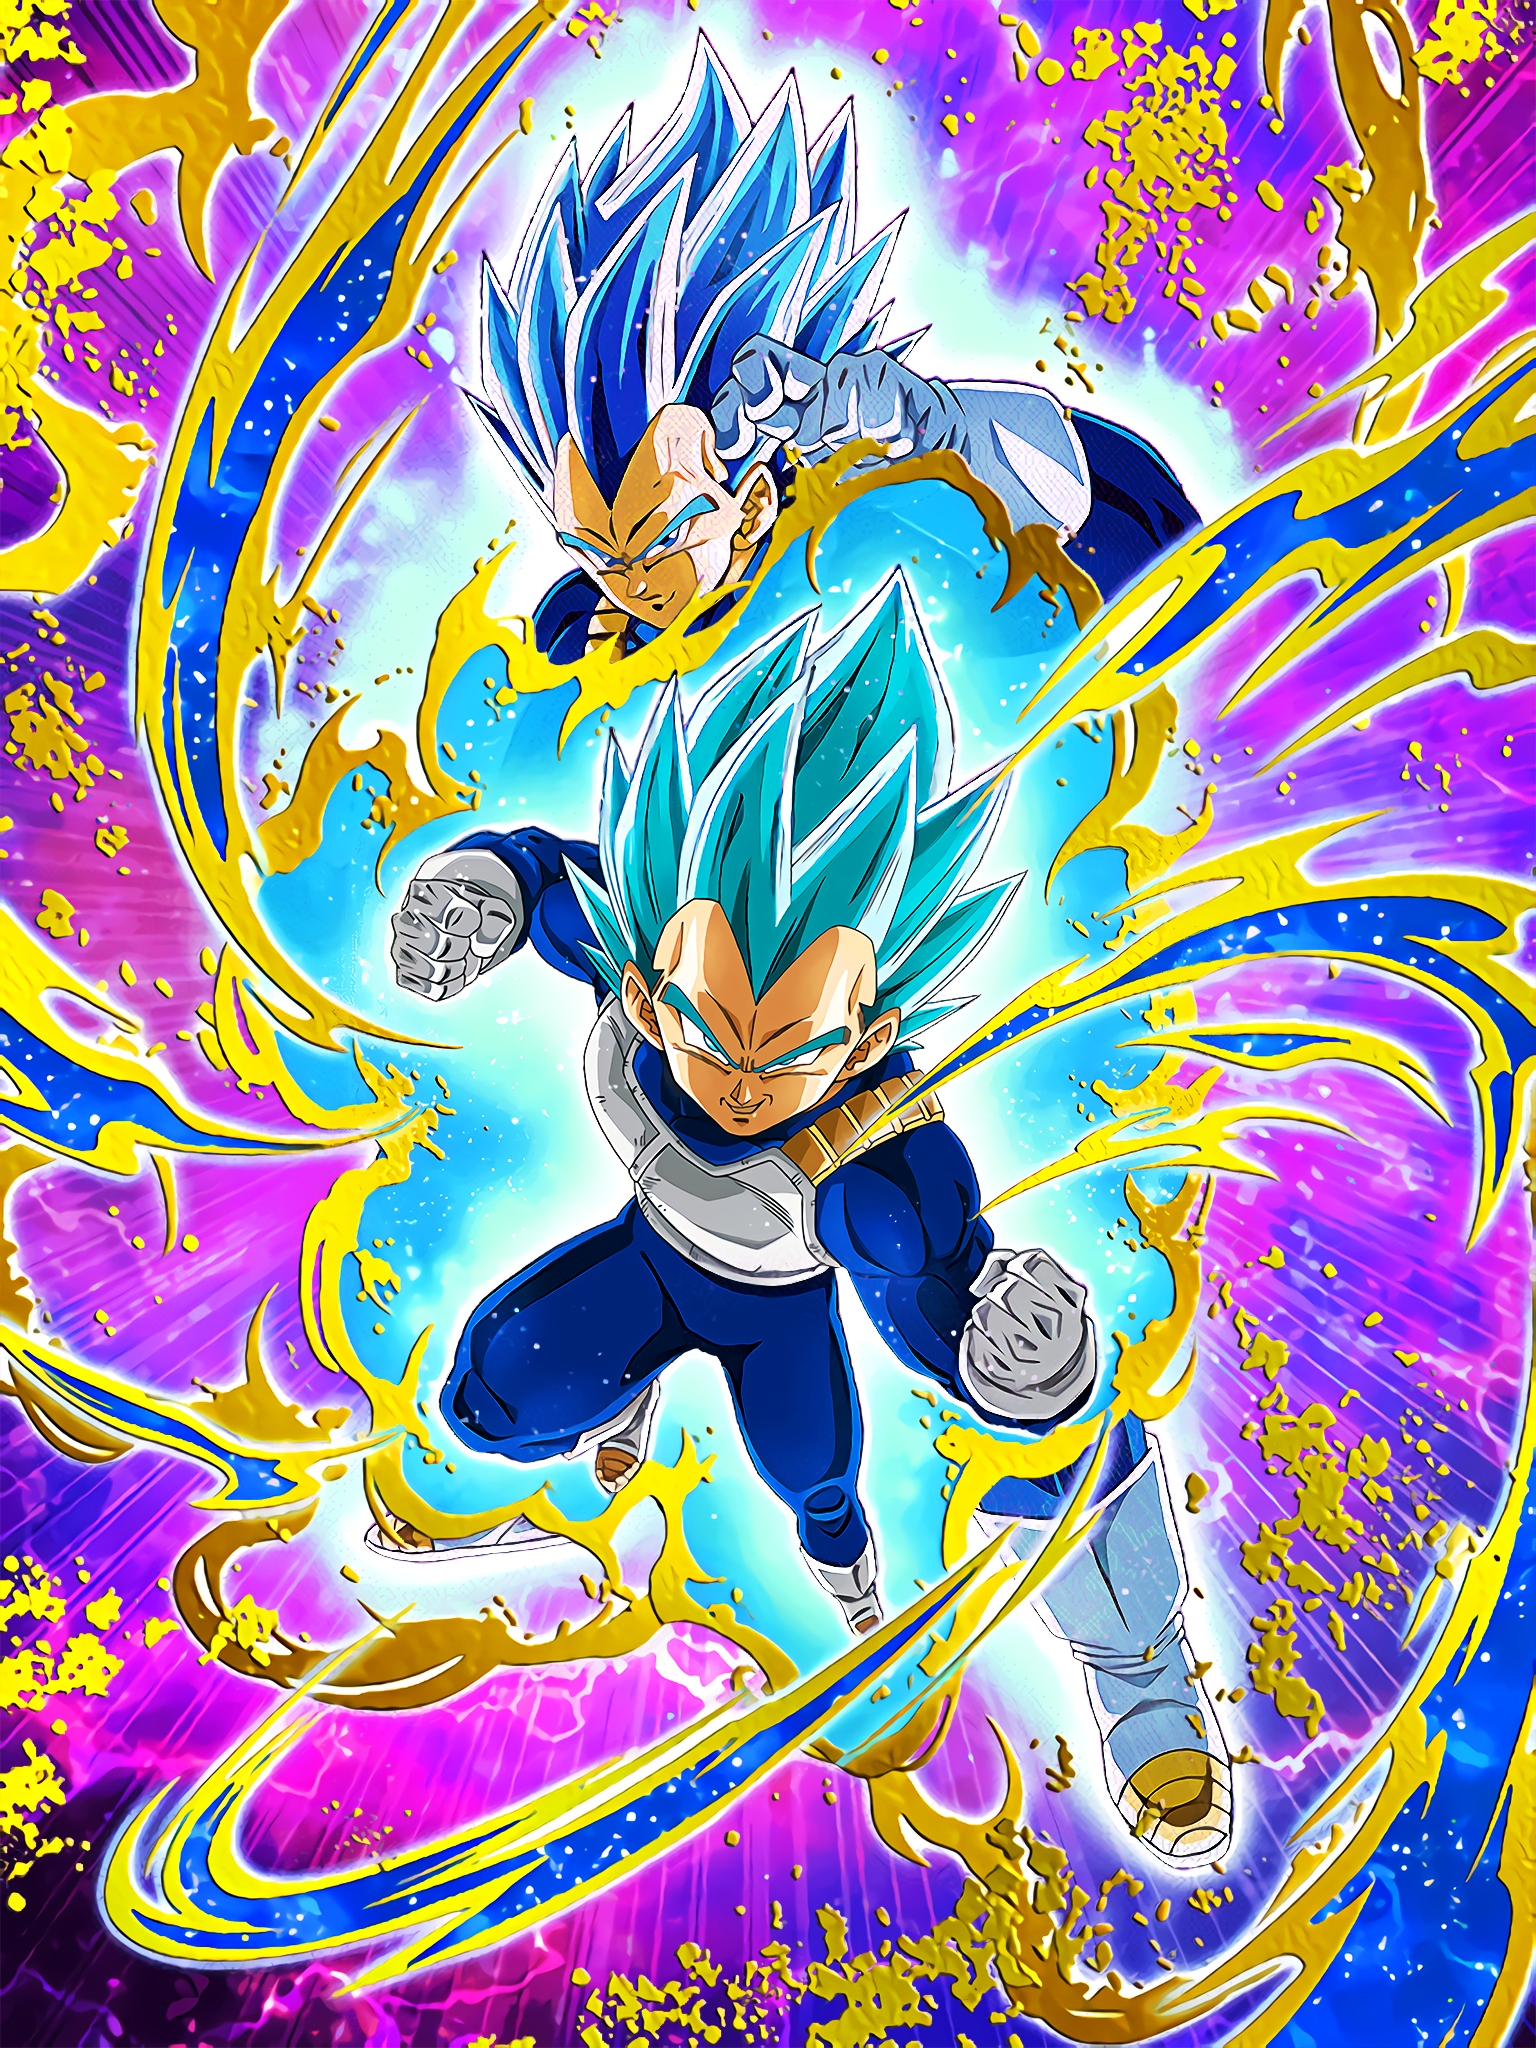 Devoted Pride Super Saiyan God SS Vegeta Art (Dragon Ball Z Dokkan Battle).jpg